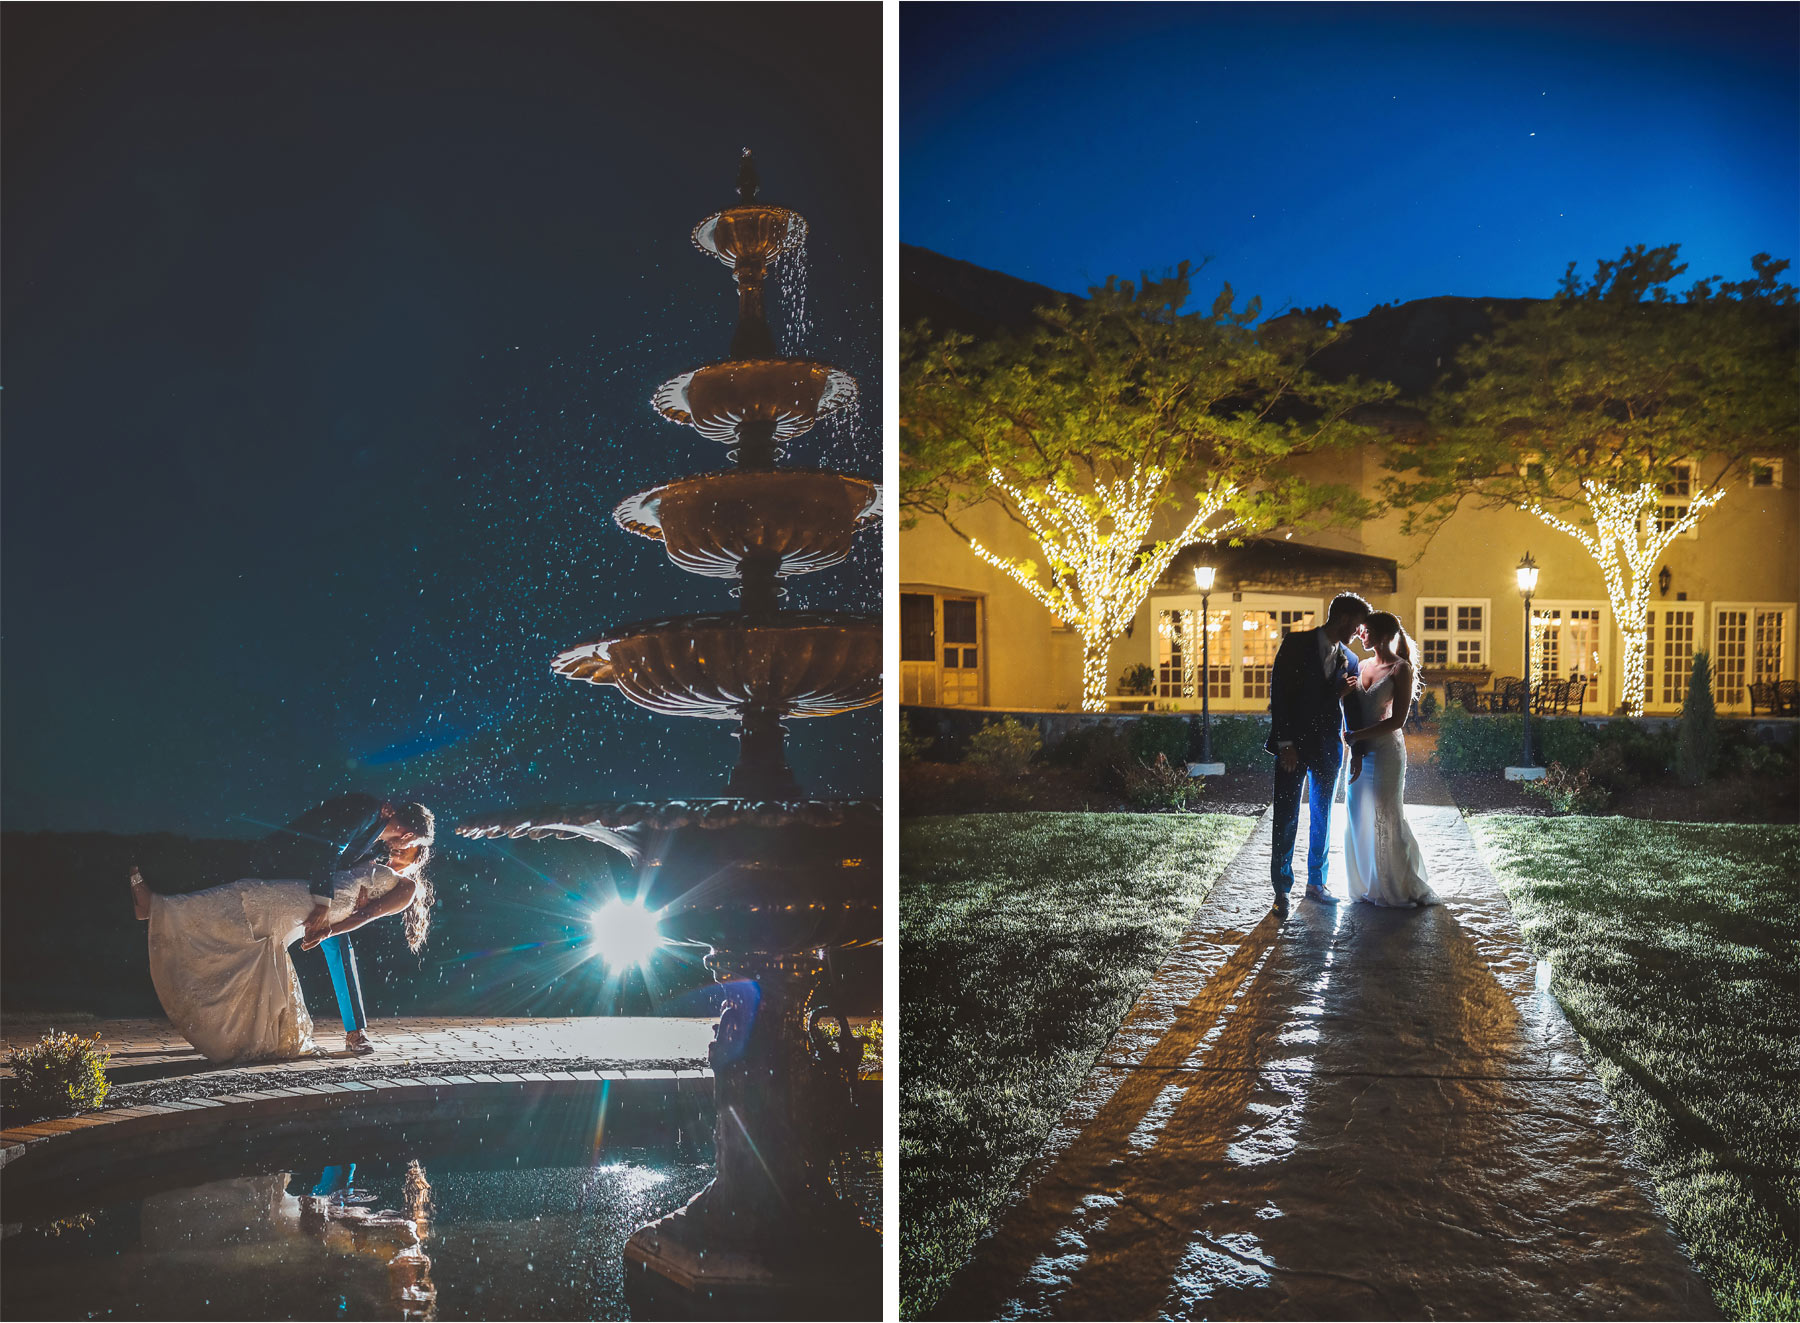 24-Minneapolis-Minnesota-Wedding-Andrew-Vick-Photography-Bavaria-Downs-Bride-Groom-Fountain-Night-Paige-and-Blake.jpg